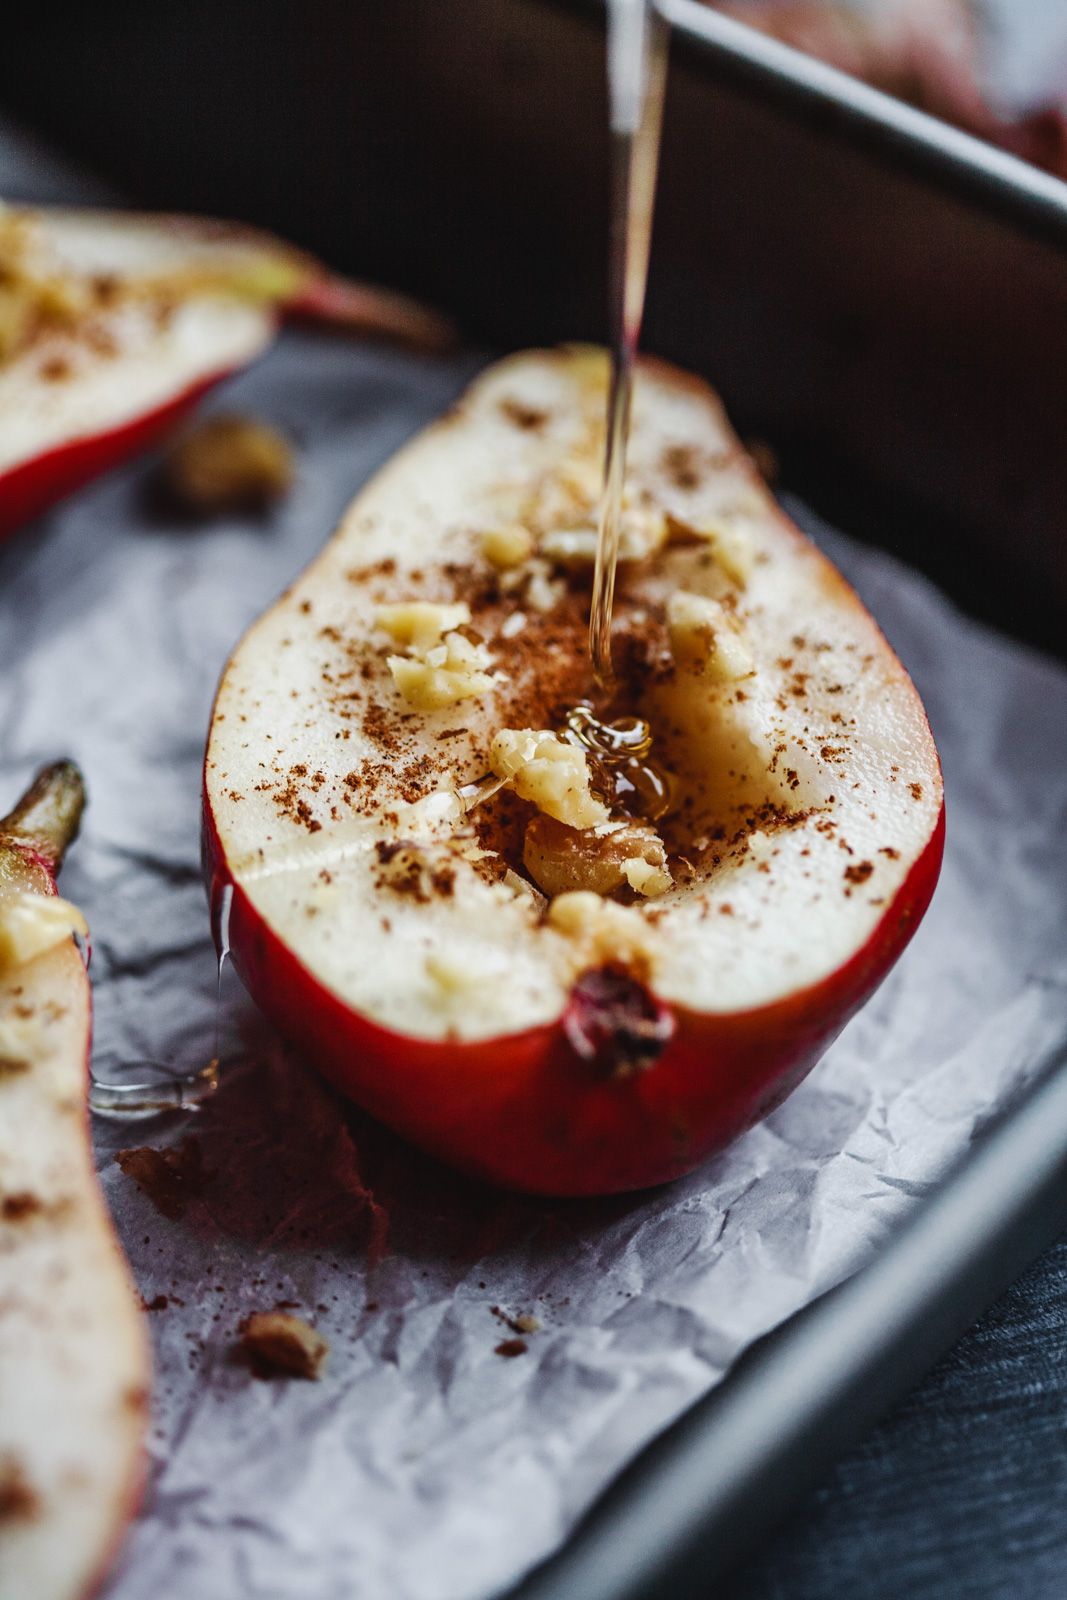 Spiced Quinoa Pudding With Baked Pears With Honey and Nuts